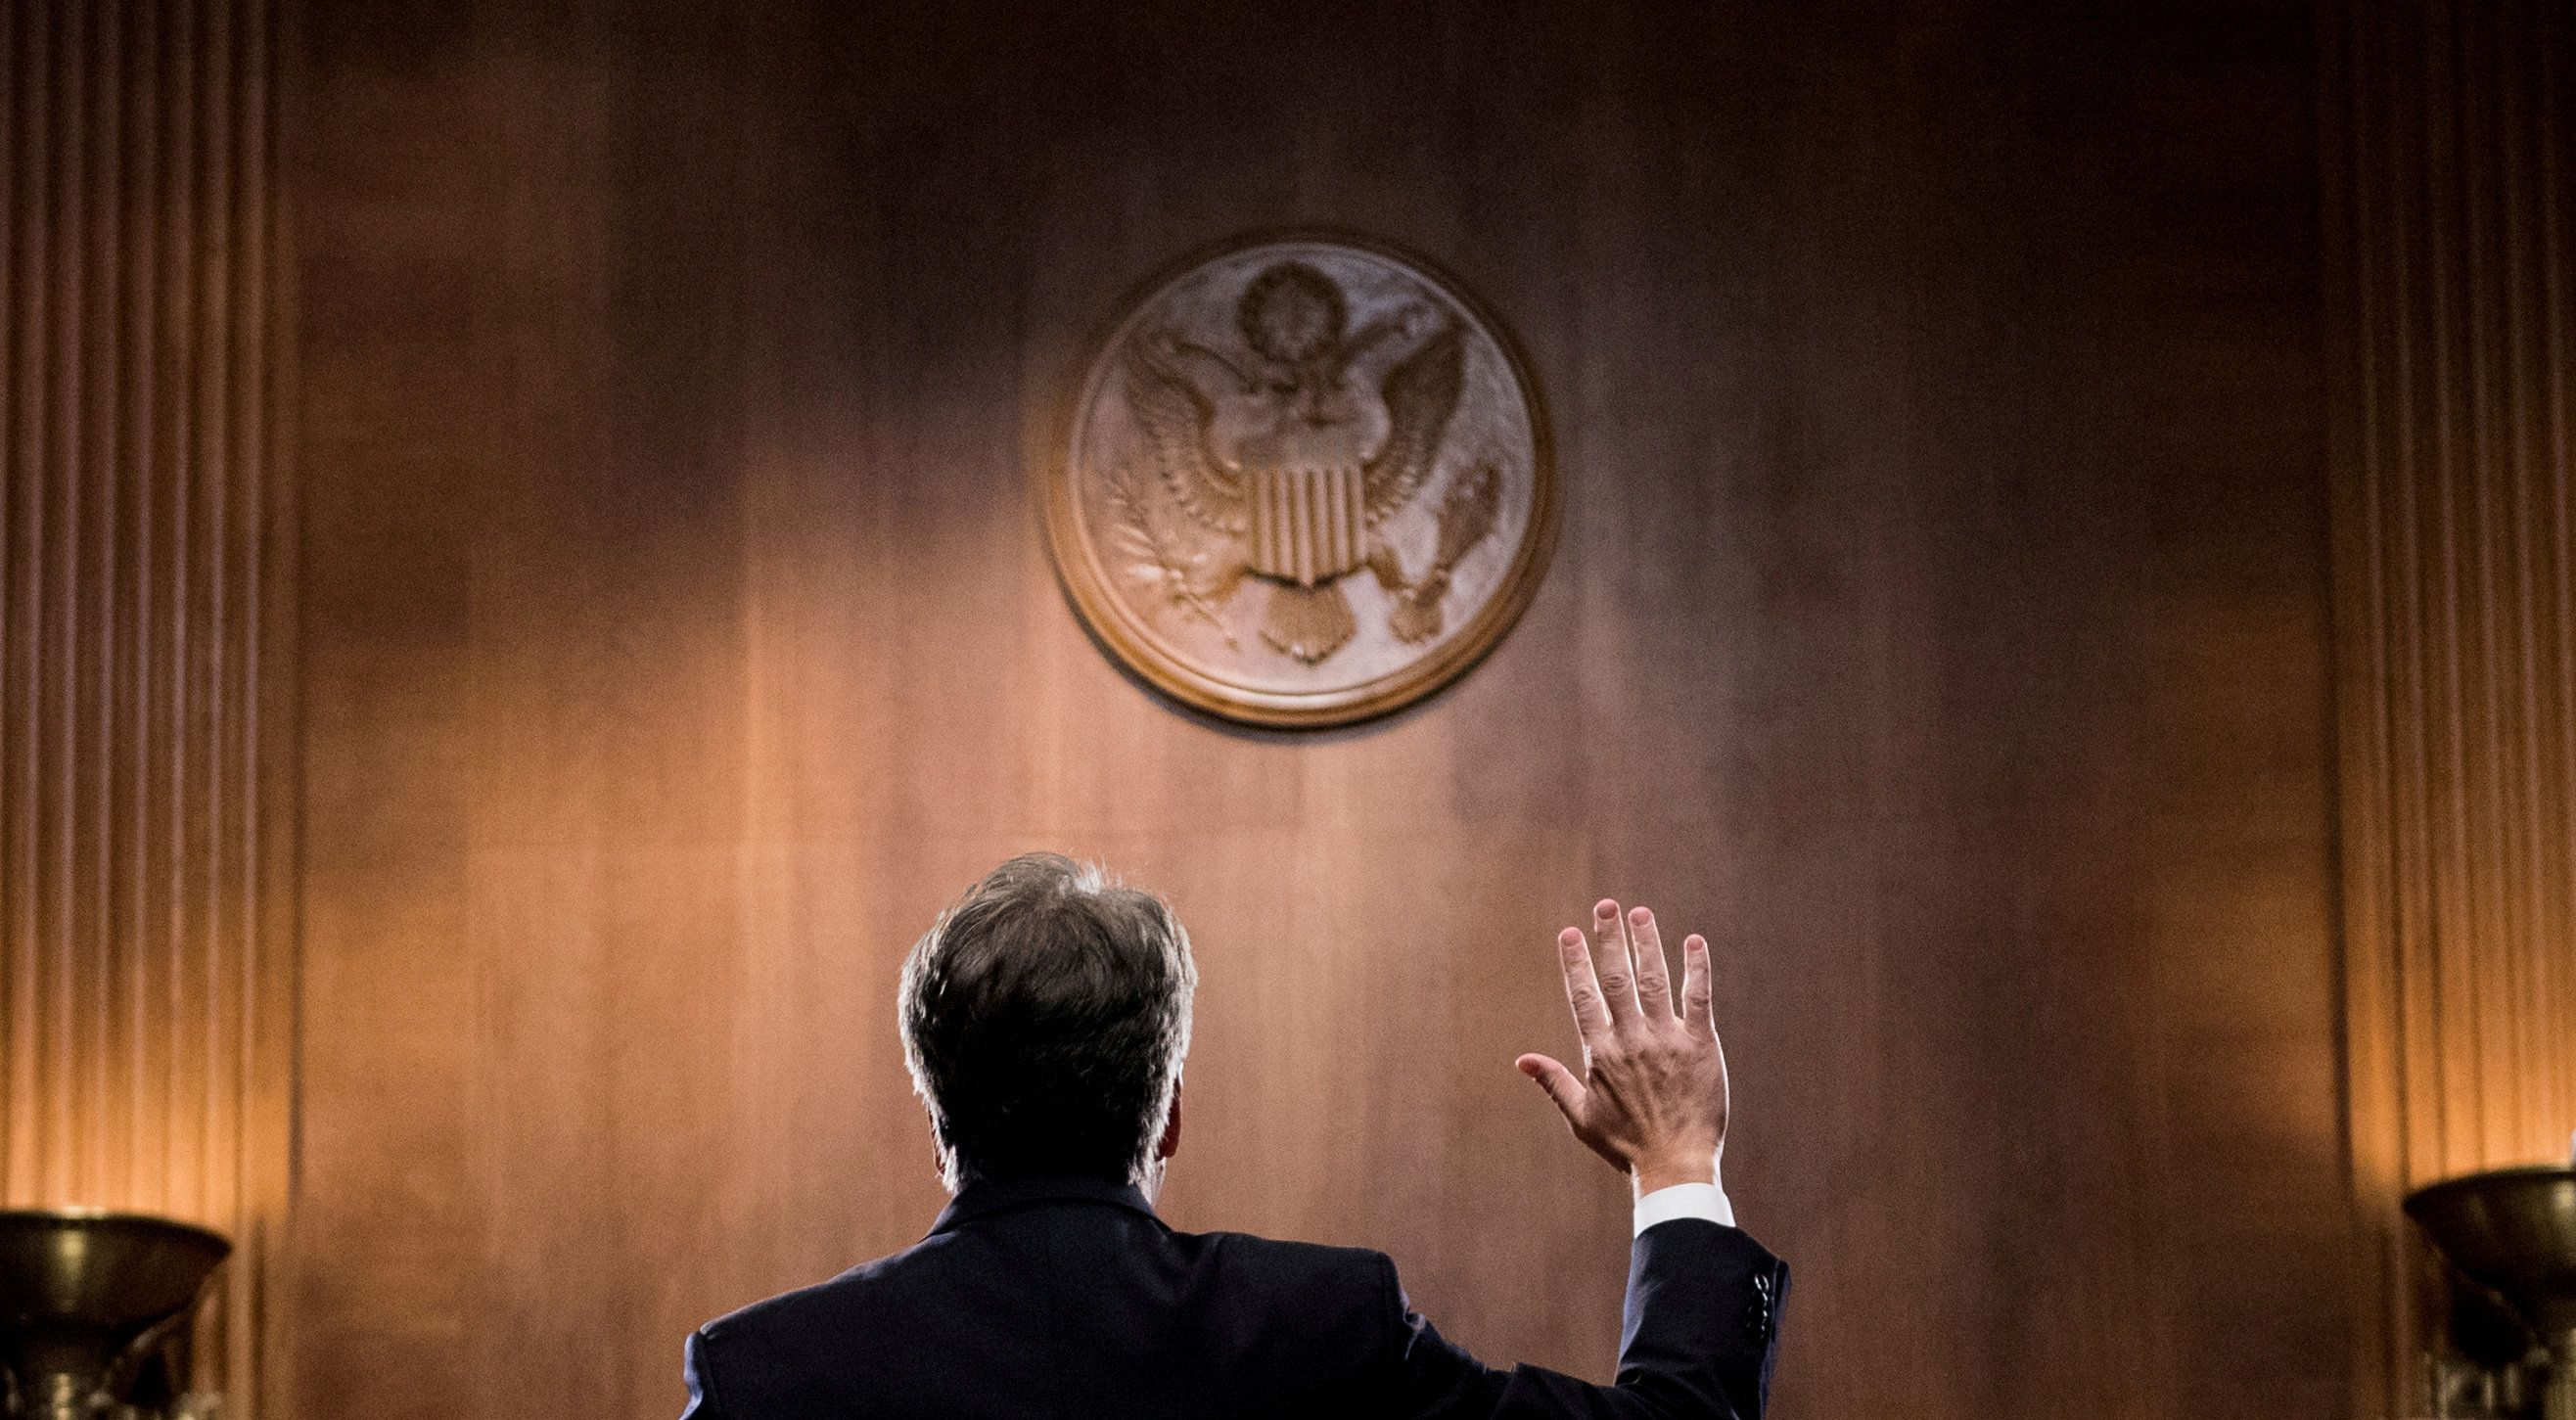 Judge Brett Kavanaugh is sworn in before testifying before the U.S. Senate Judiciary Committee on Capitol Hill in Washington, U.S., September 27, 2018. Tom Williams/Pool via REUTERS      TPX IMAGES OF THE DAY